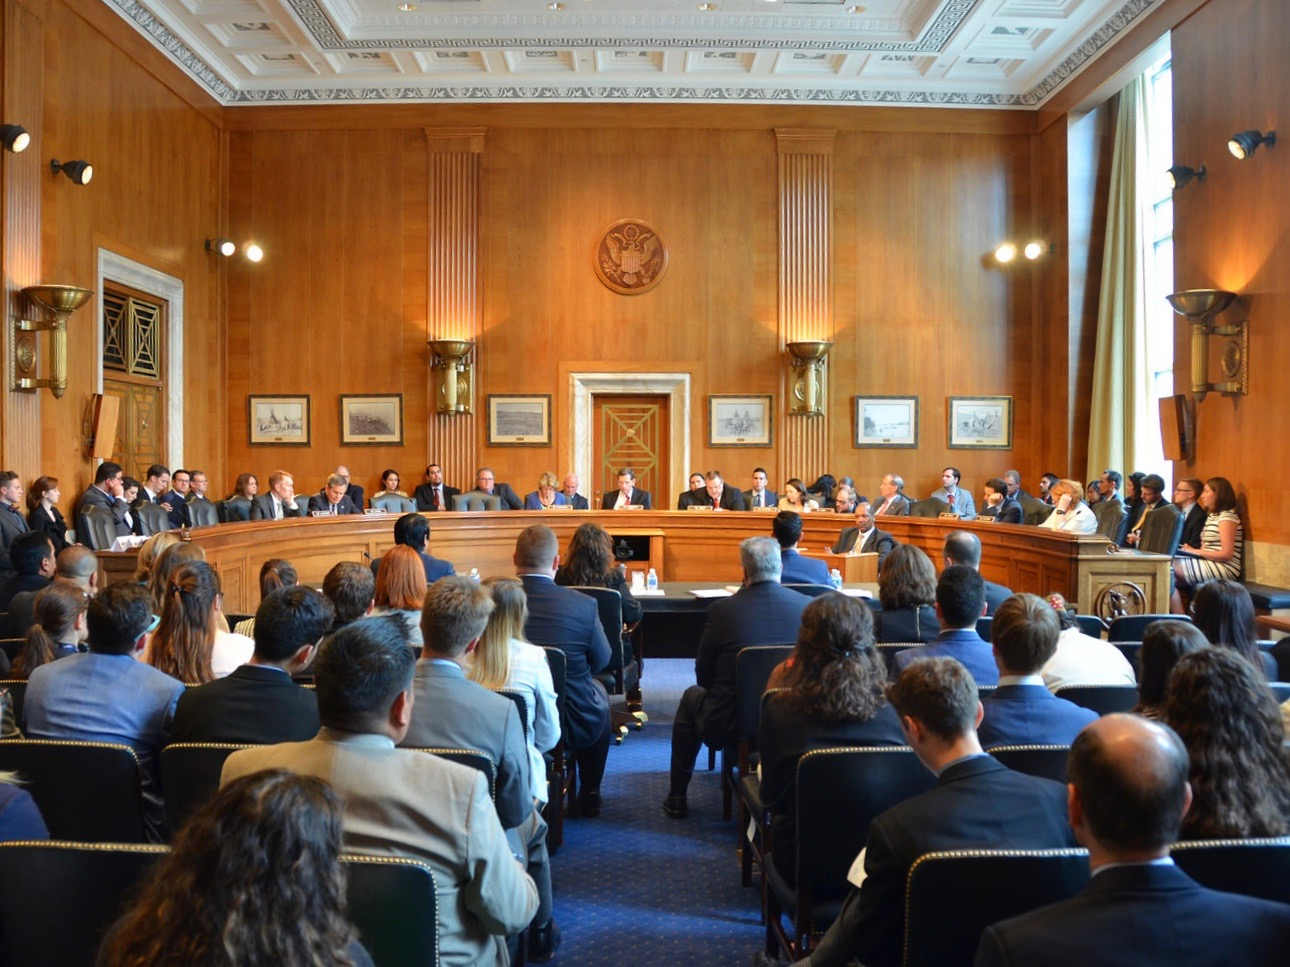 Senate Committee on Indian Affairs schedules hearing on four bills